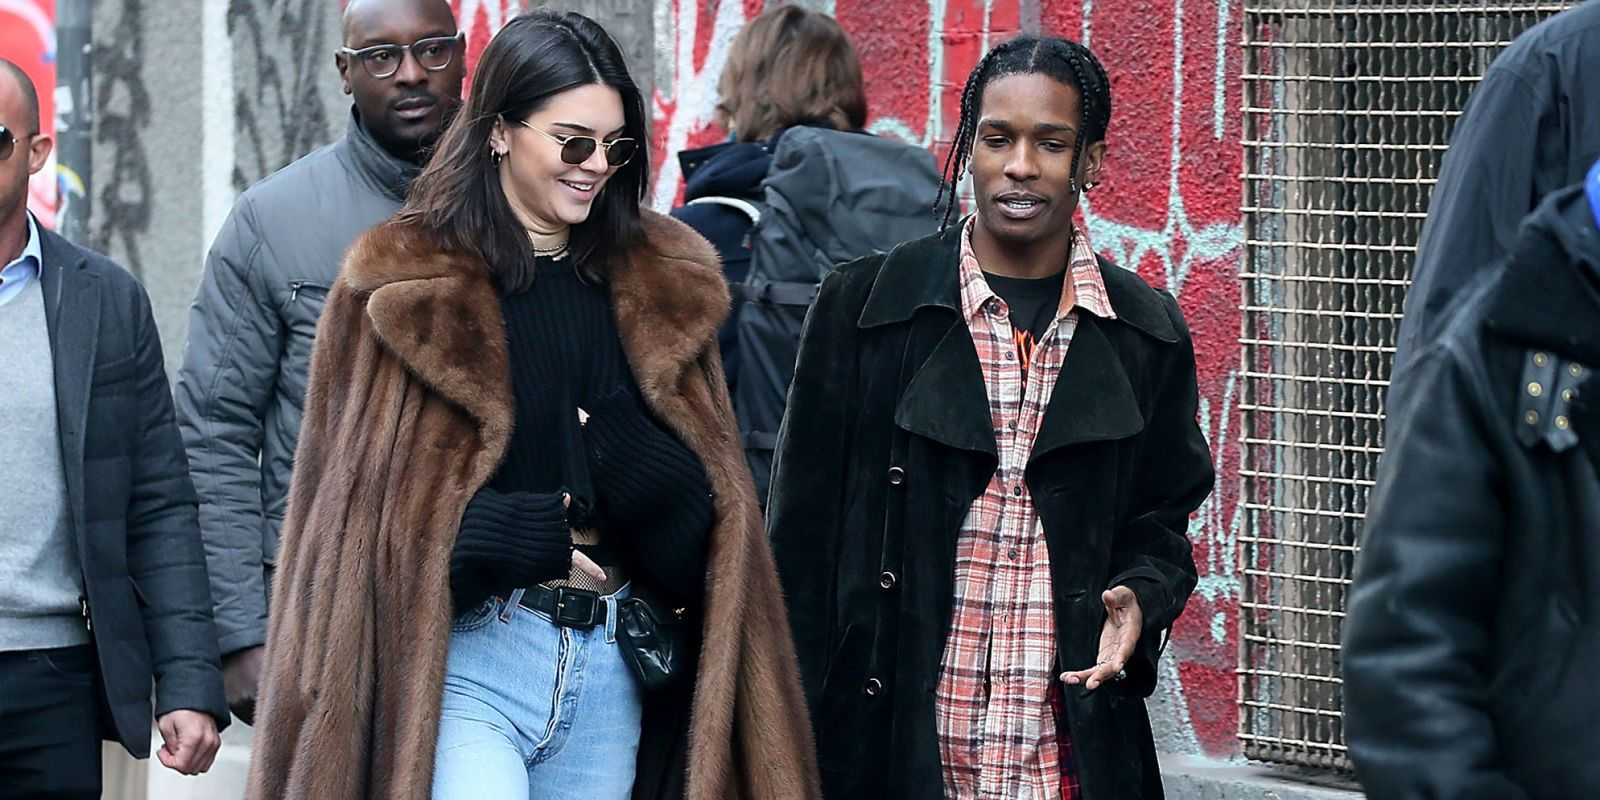 Kendall Jenner and A$AP Rocky Explore Paris Together